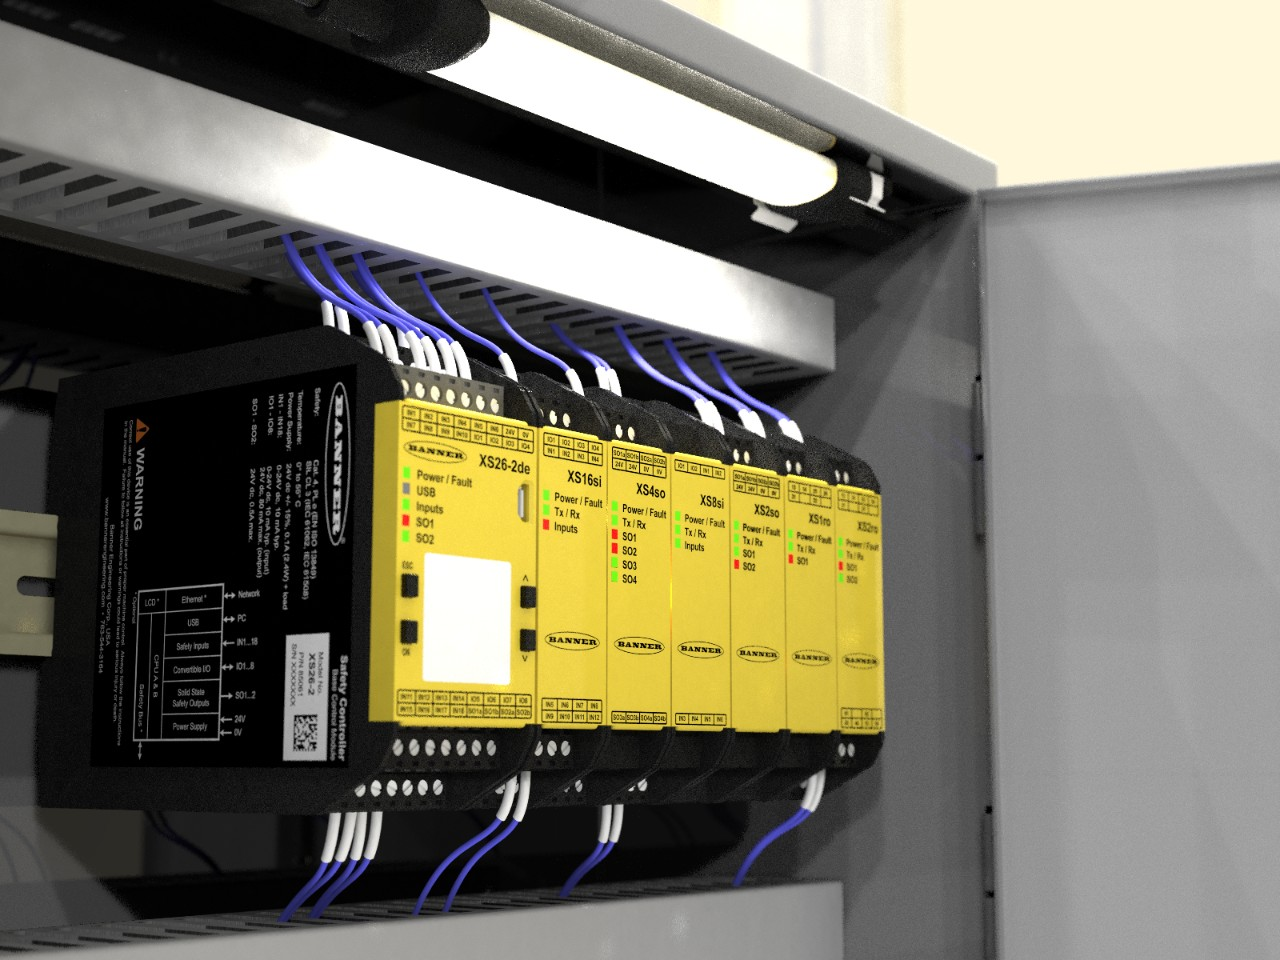 WLS15 led light illuminates a safety control cabinet